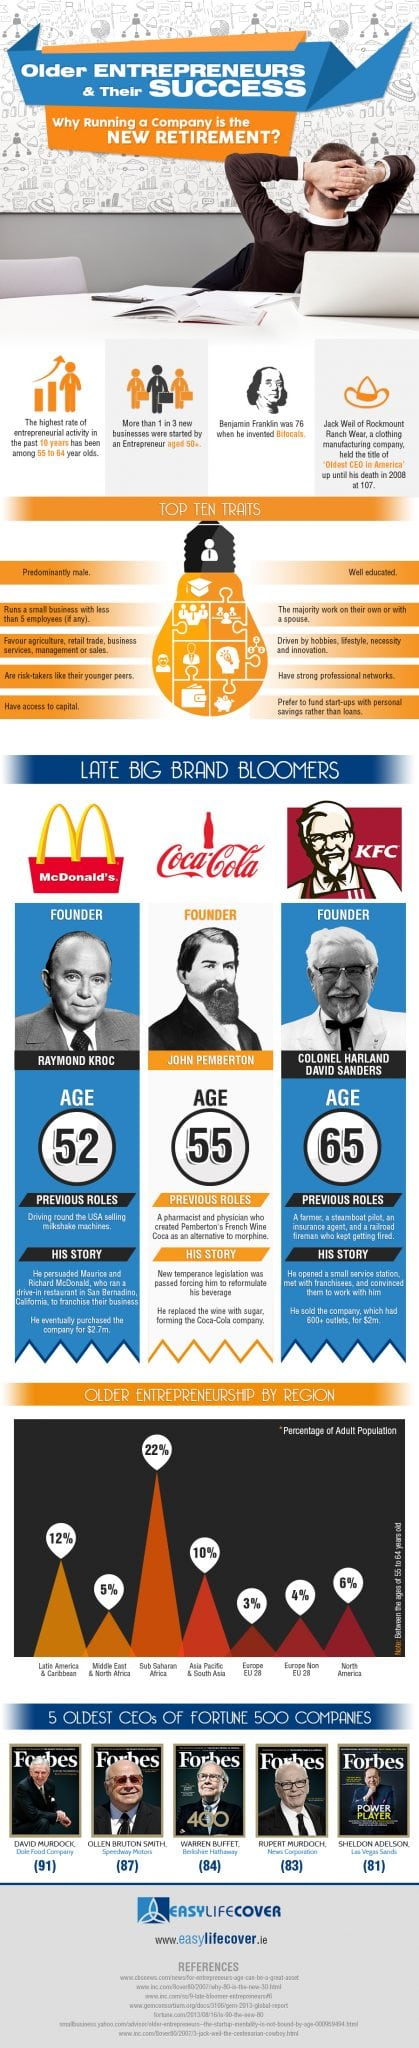 Photo of Older Entrepreneurs and Their Success, Why Running a Company is the New Retirement [INFOGRAPHIC]